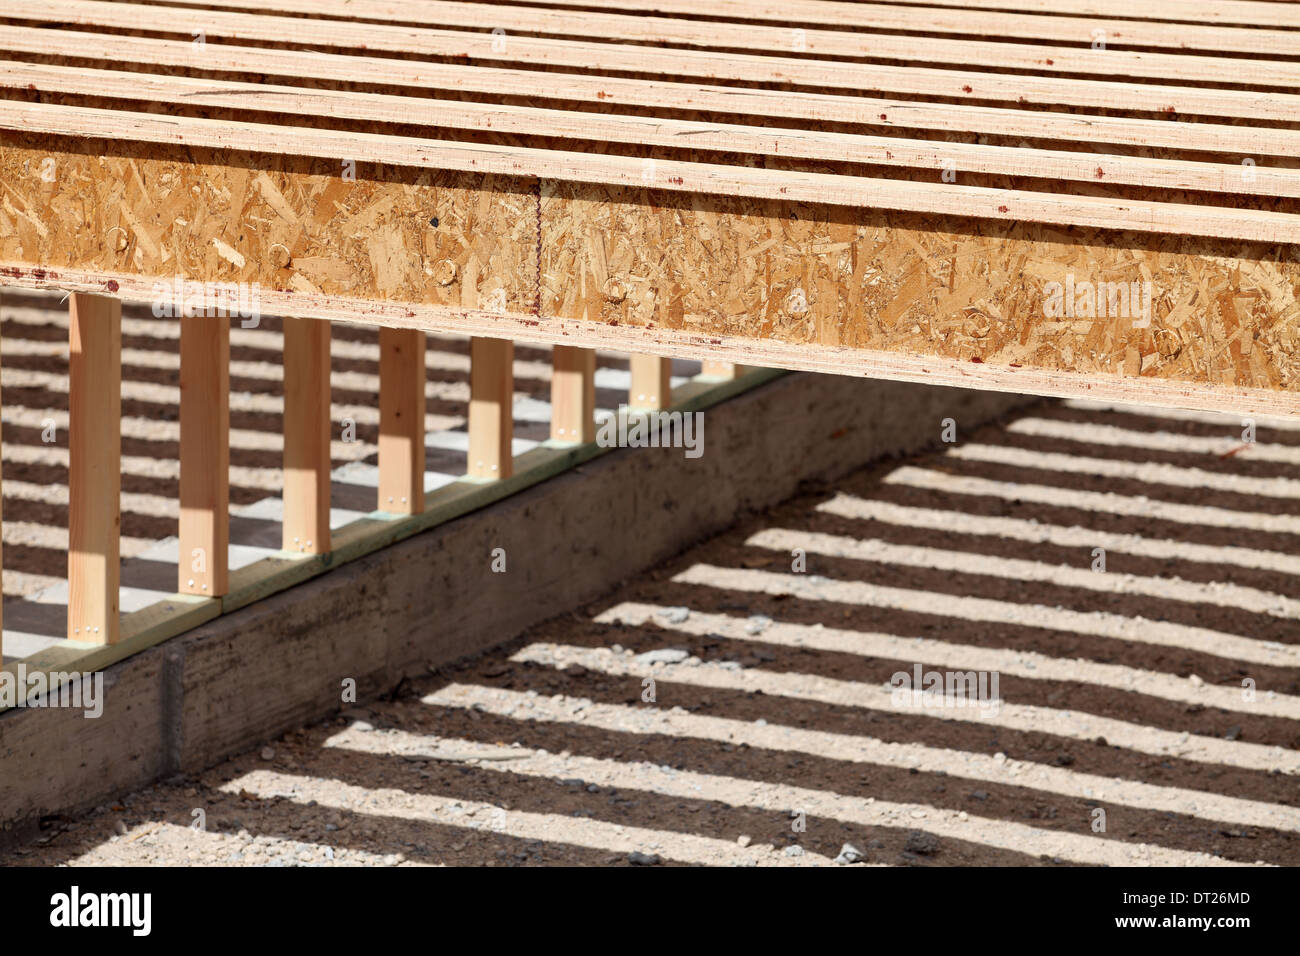 The repeating pattern of floor joists in a new construction project - Stock Image